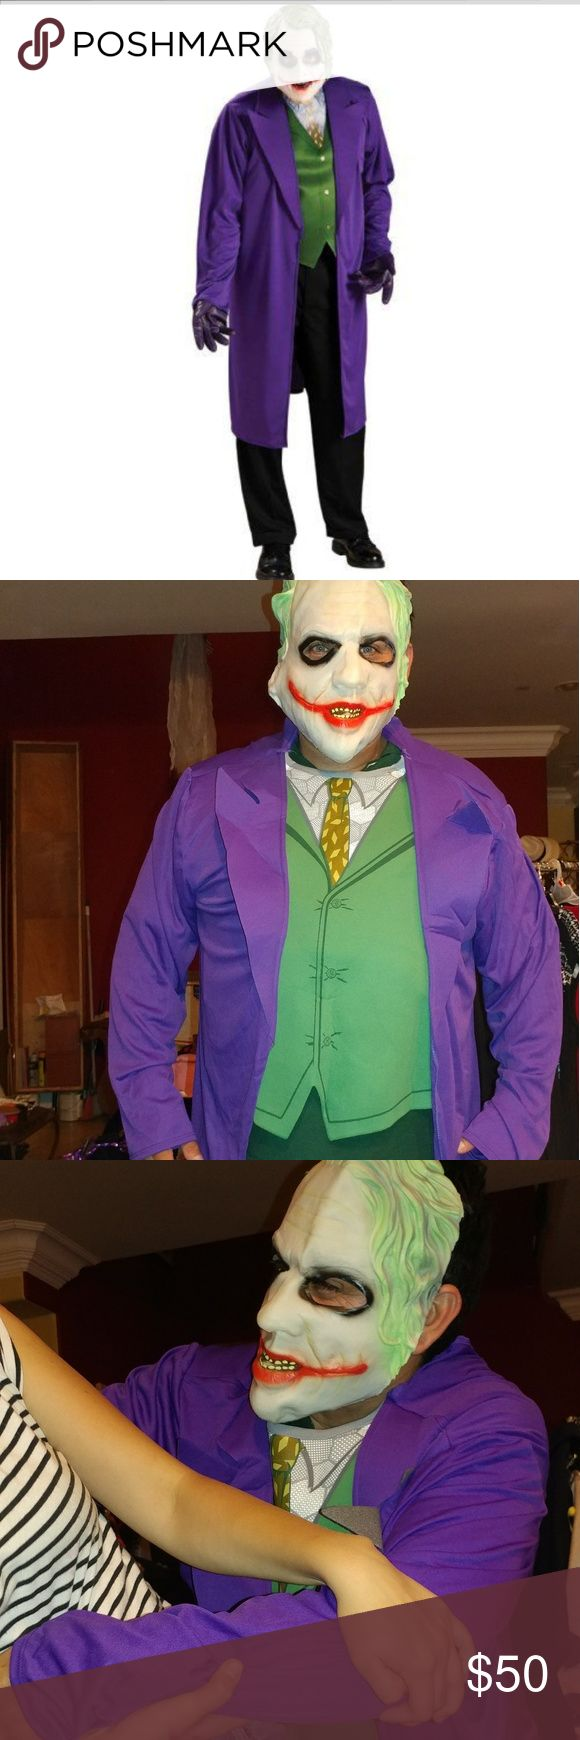 Batman The Dark Knight Joker Costume, Black/Purple Batman The Dark Knight Joker Costume, Black/Purple, X-Large Polyester Jacket With Printed Vest, Shirt And Tie - Also includes mask - Available in adult standard or xl - Machine wash cold, hand dry rubie's Jackets & Coats